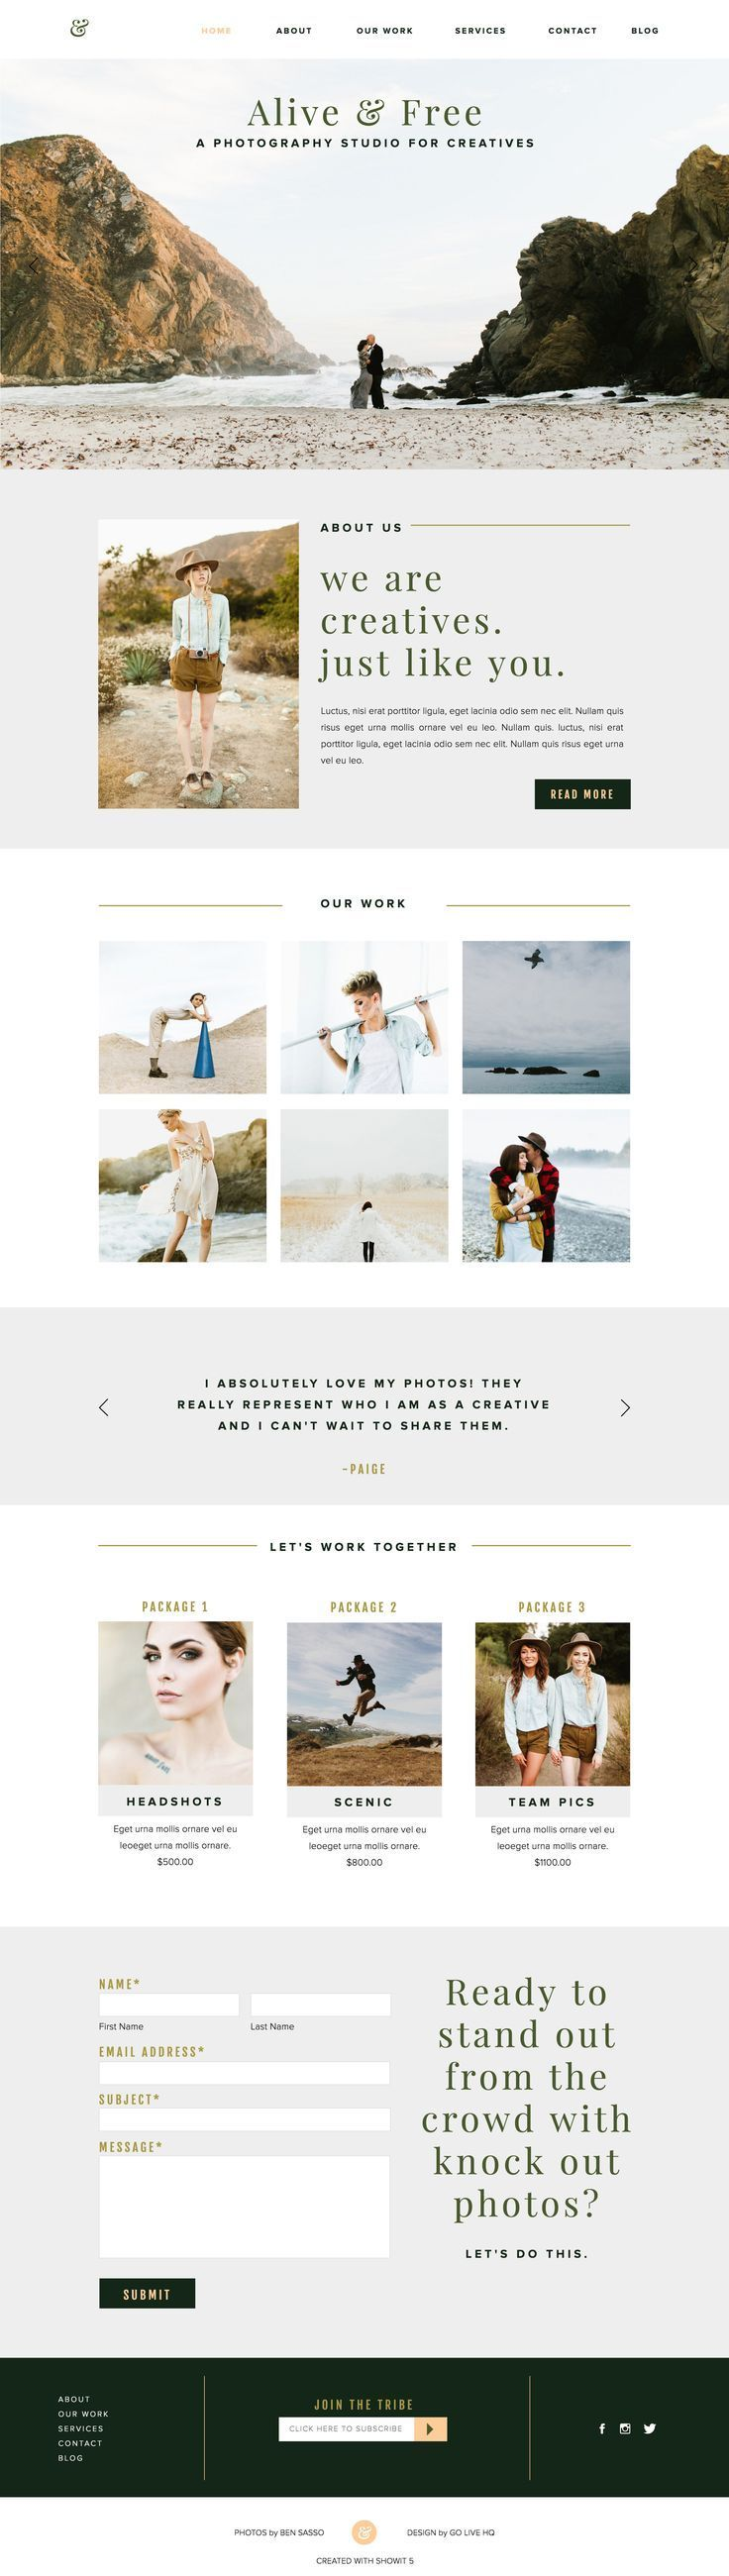 alive free showit free photography website template